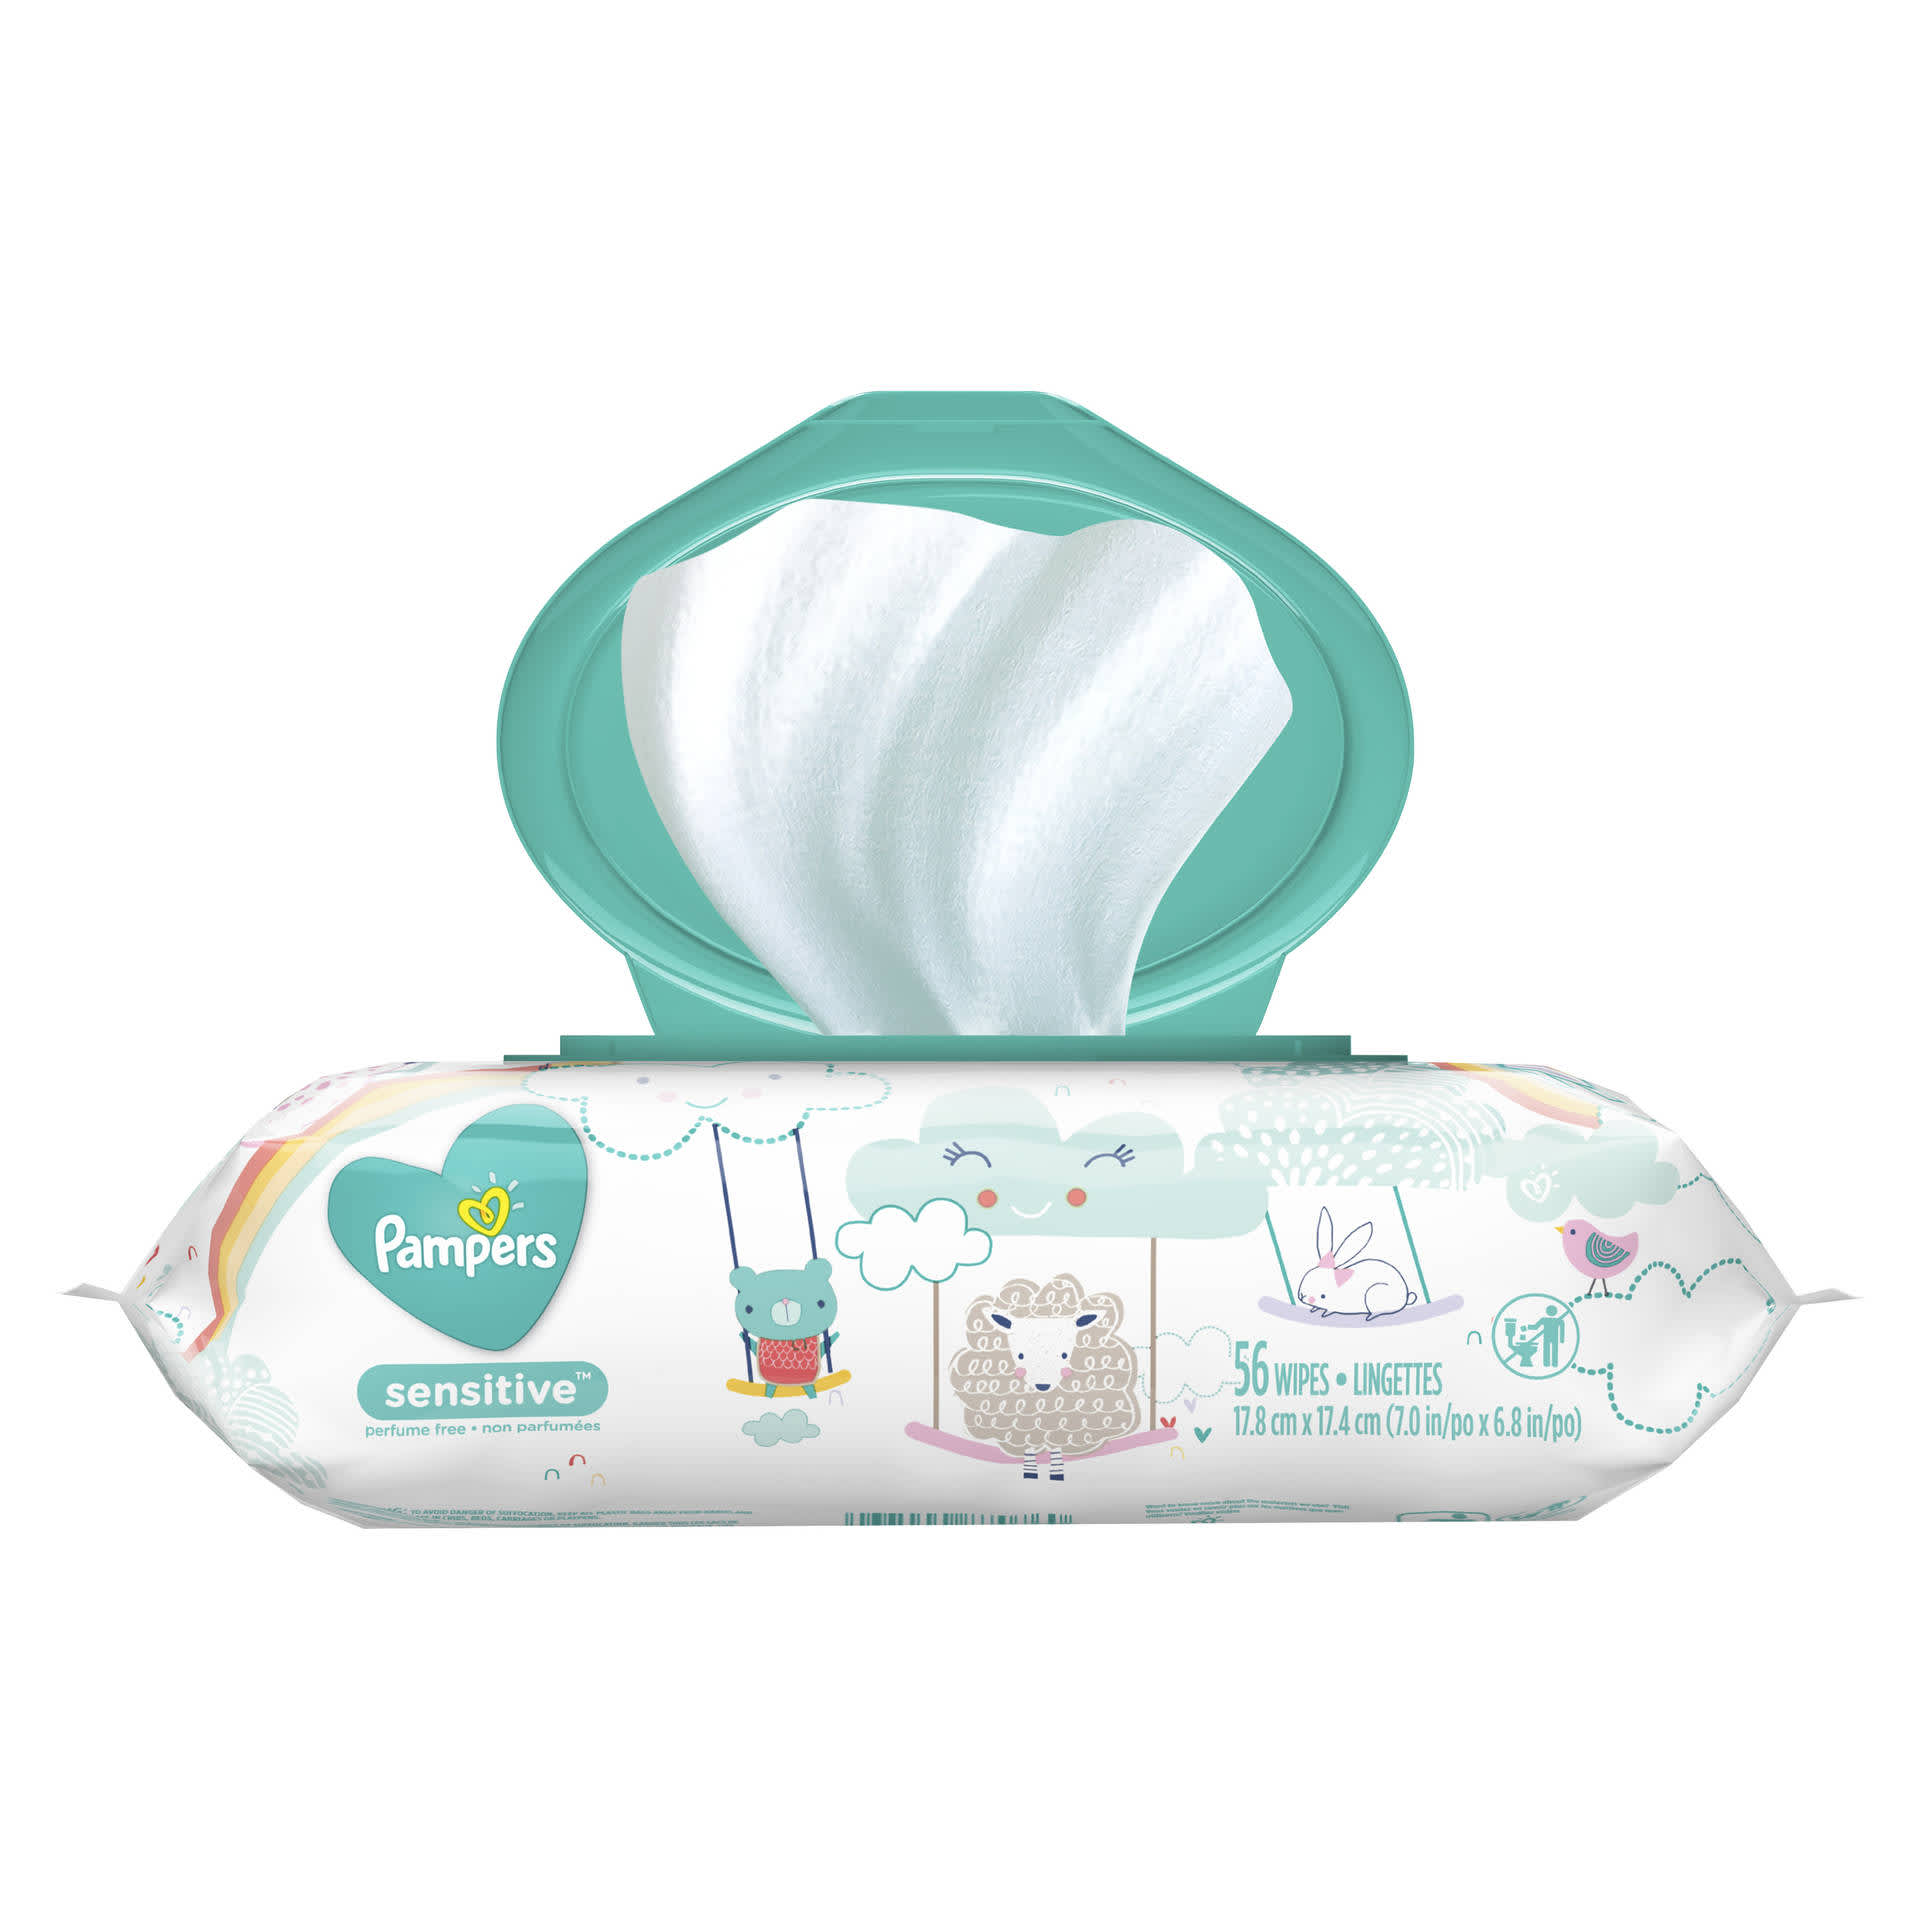 picture about Pampers Wipes Printable Coupons titled Pampers Little one Wipes Delicate PG Day-to-day